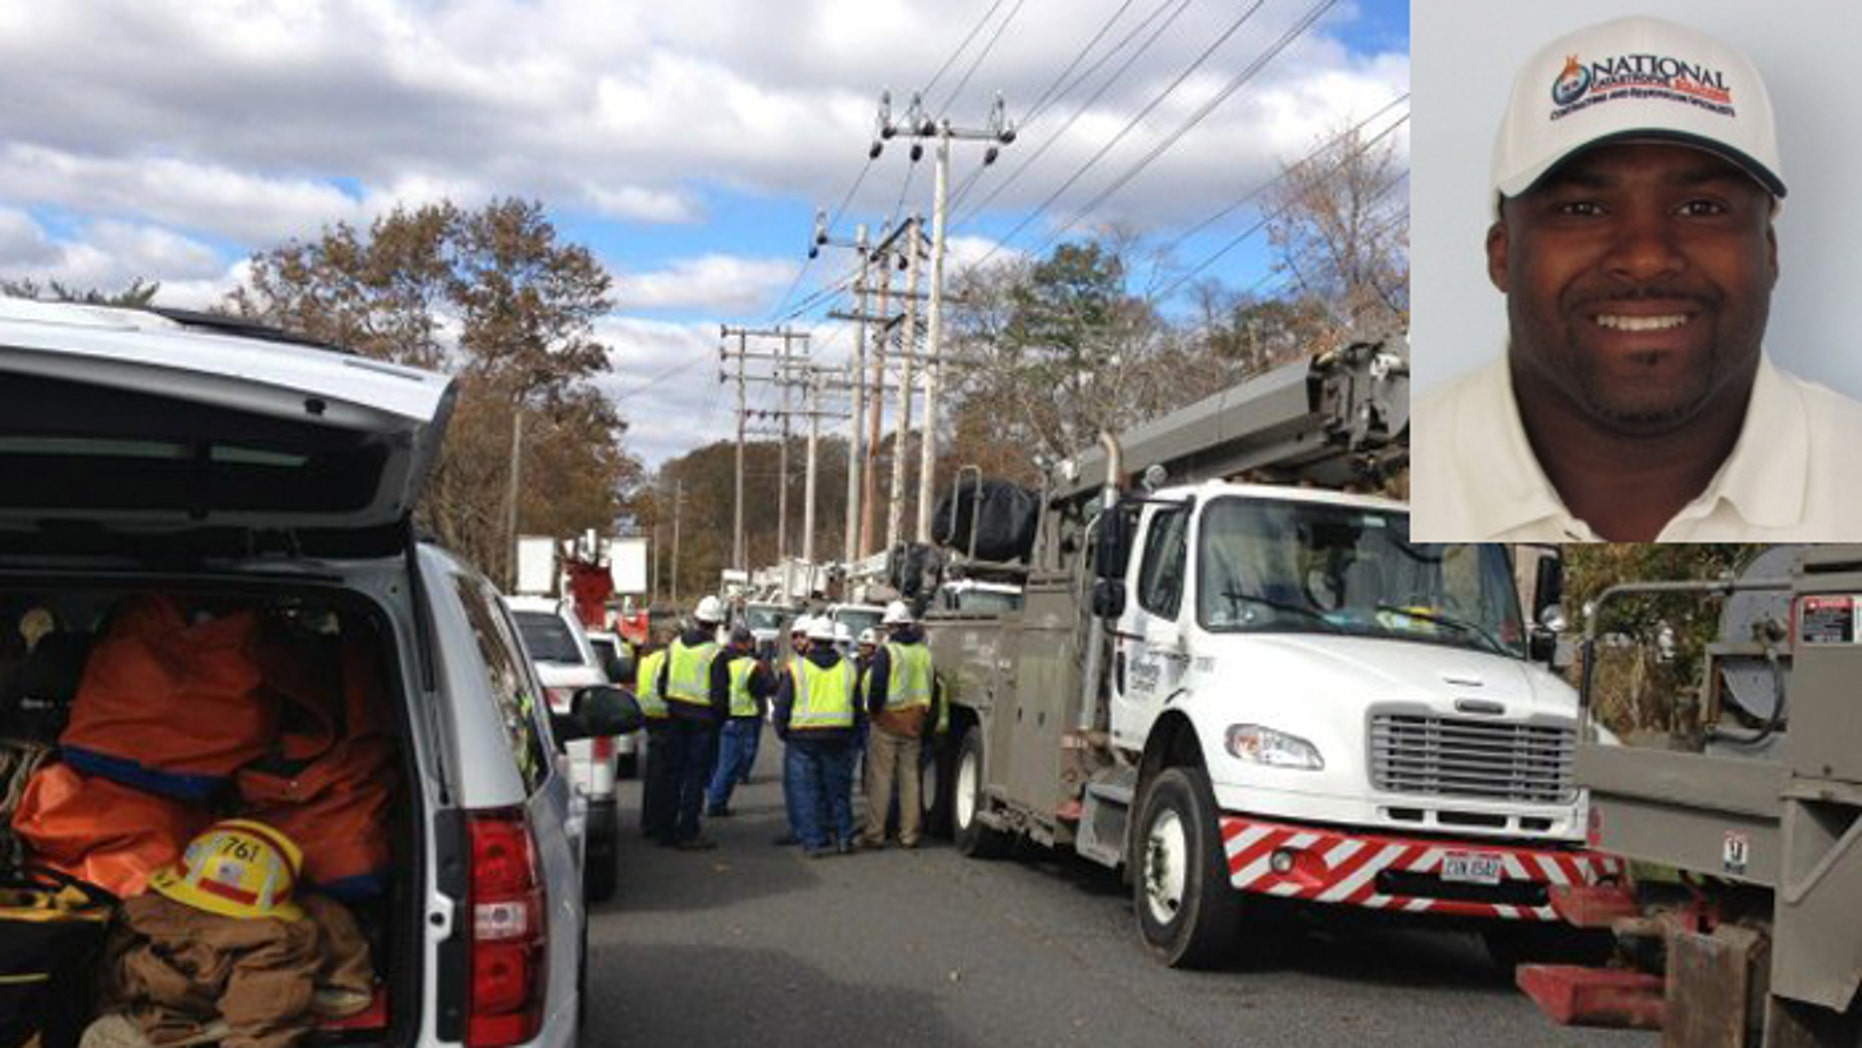 Crews like the one above, from Clark Public Utilities, in Columbia, Wash., came to help beleaguered northeasterners get their power back. An John Turner, who came from Chicago to help, left $100,000 richer. (AP/John Turner)